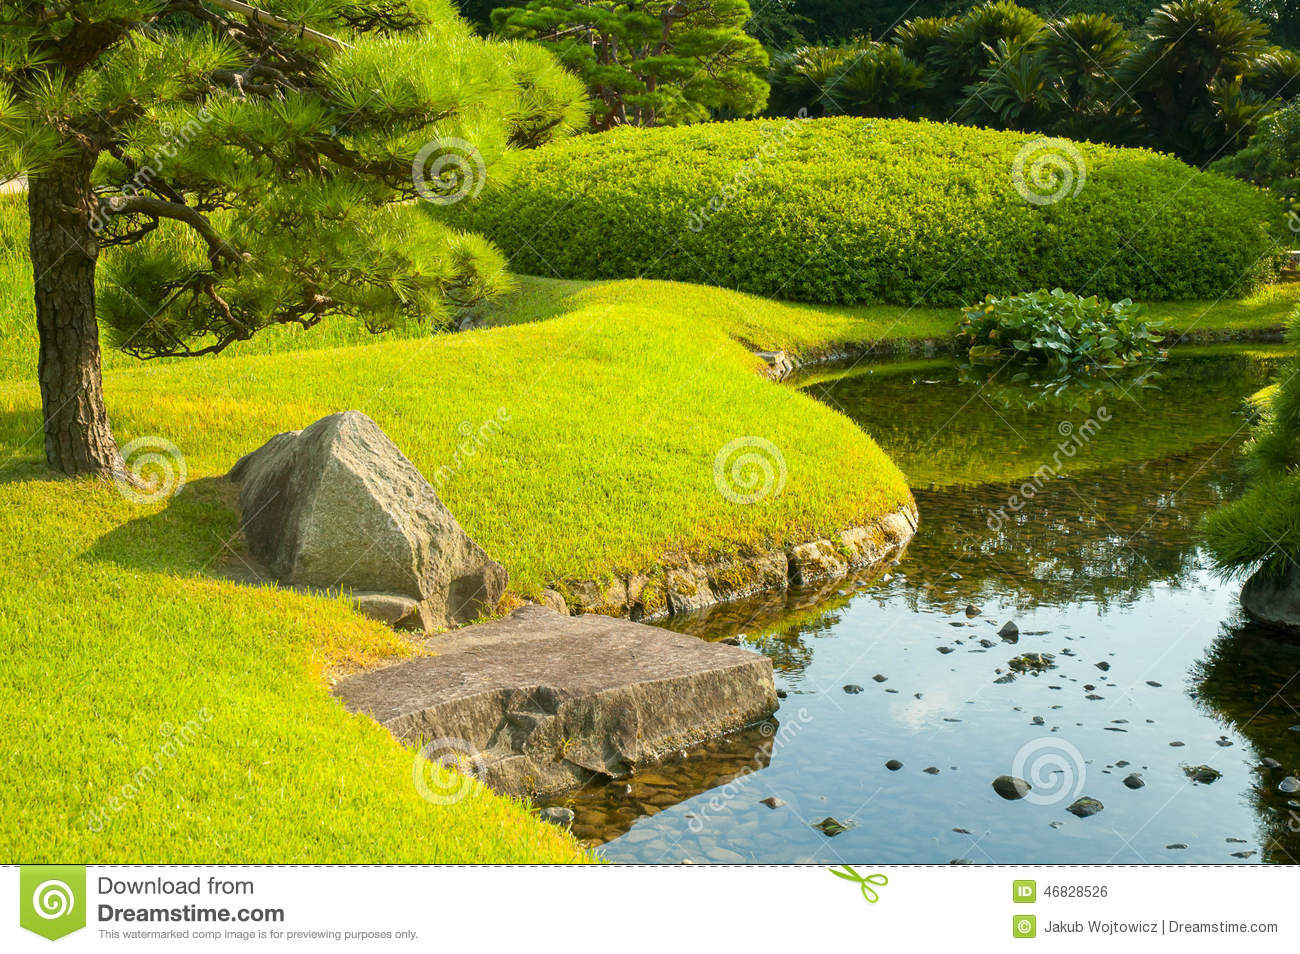 Okayama garden stock photo image 46828526 for Garden pond unlimited